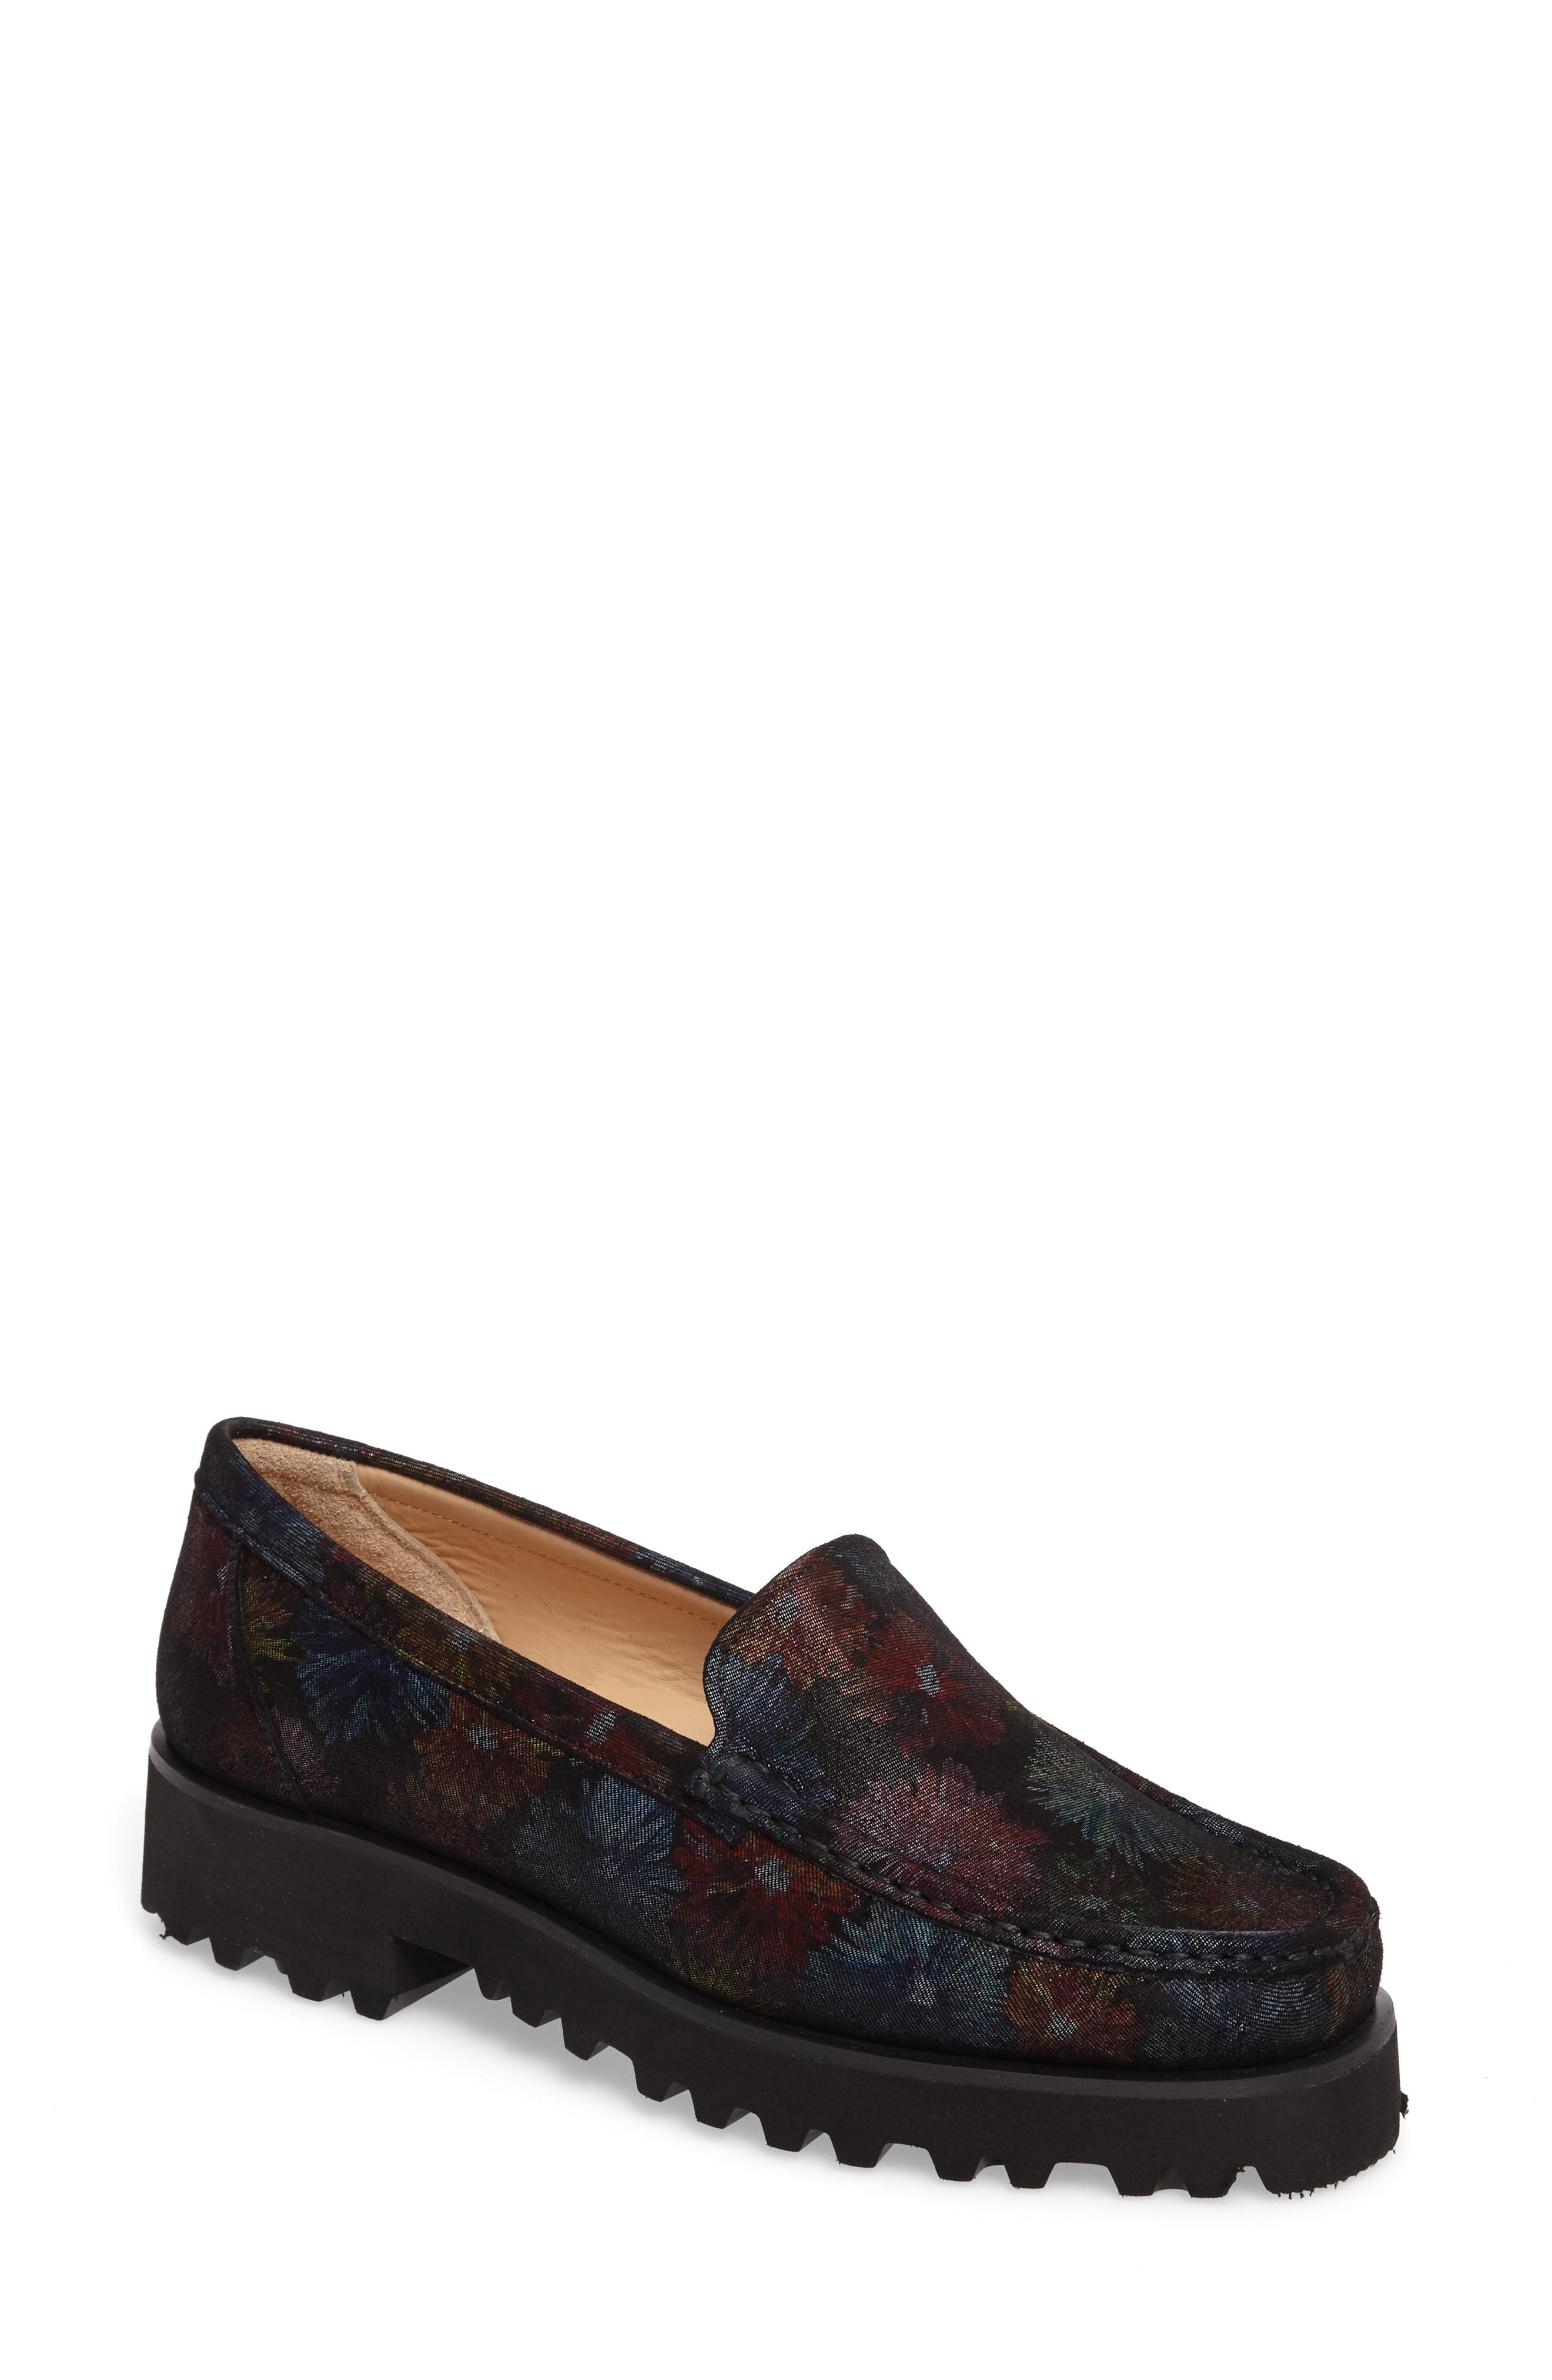 Rita Floral Water Resistant Penny Loafer,                         Main,                         color, 400